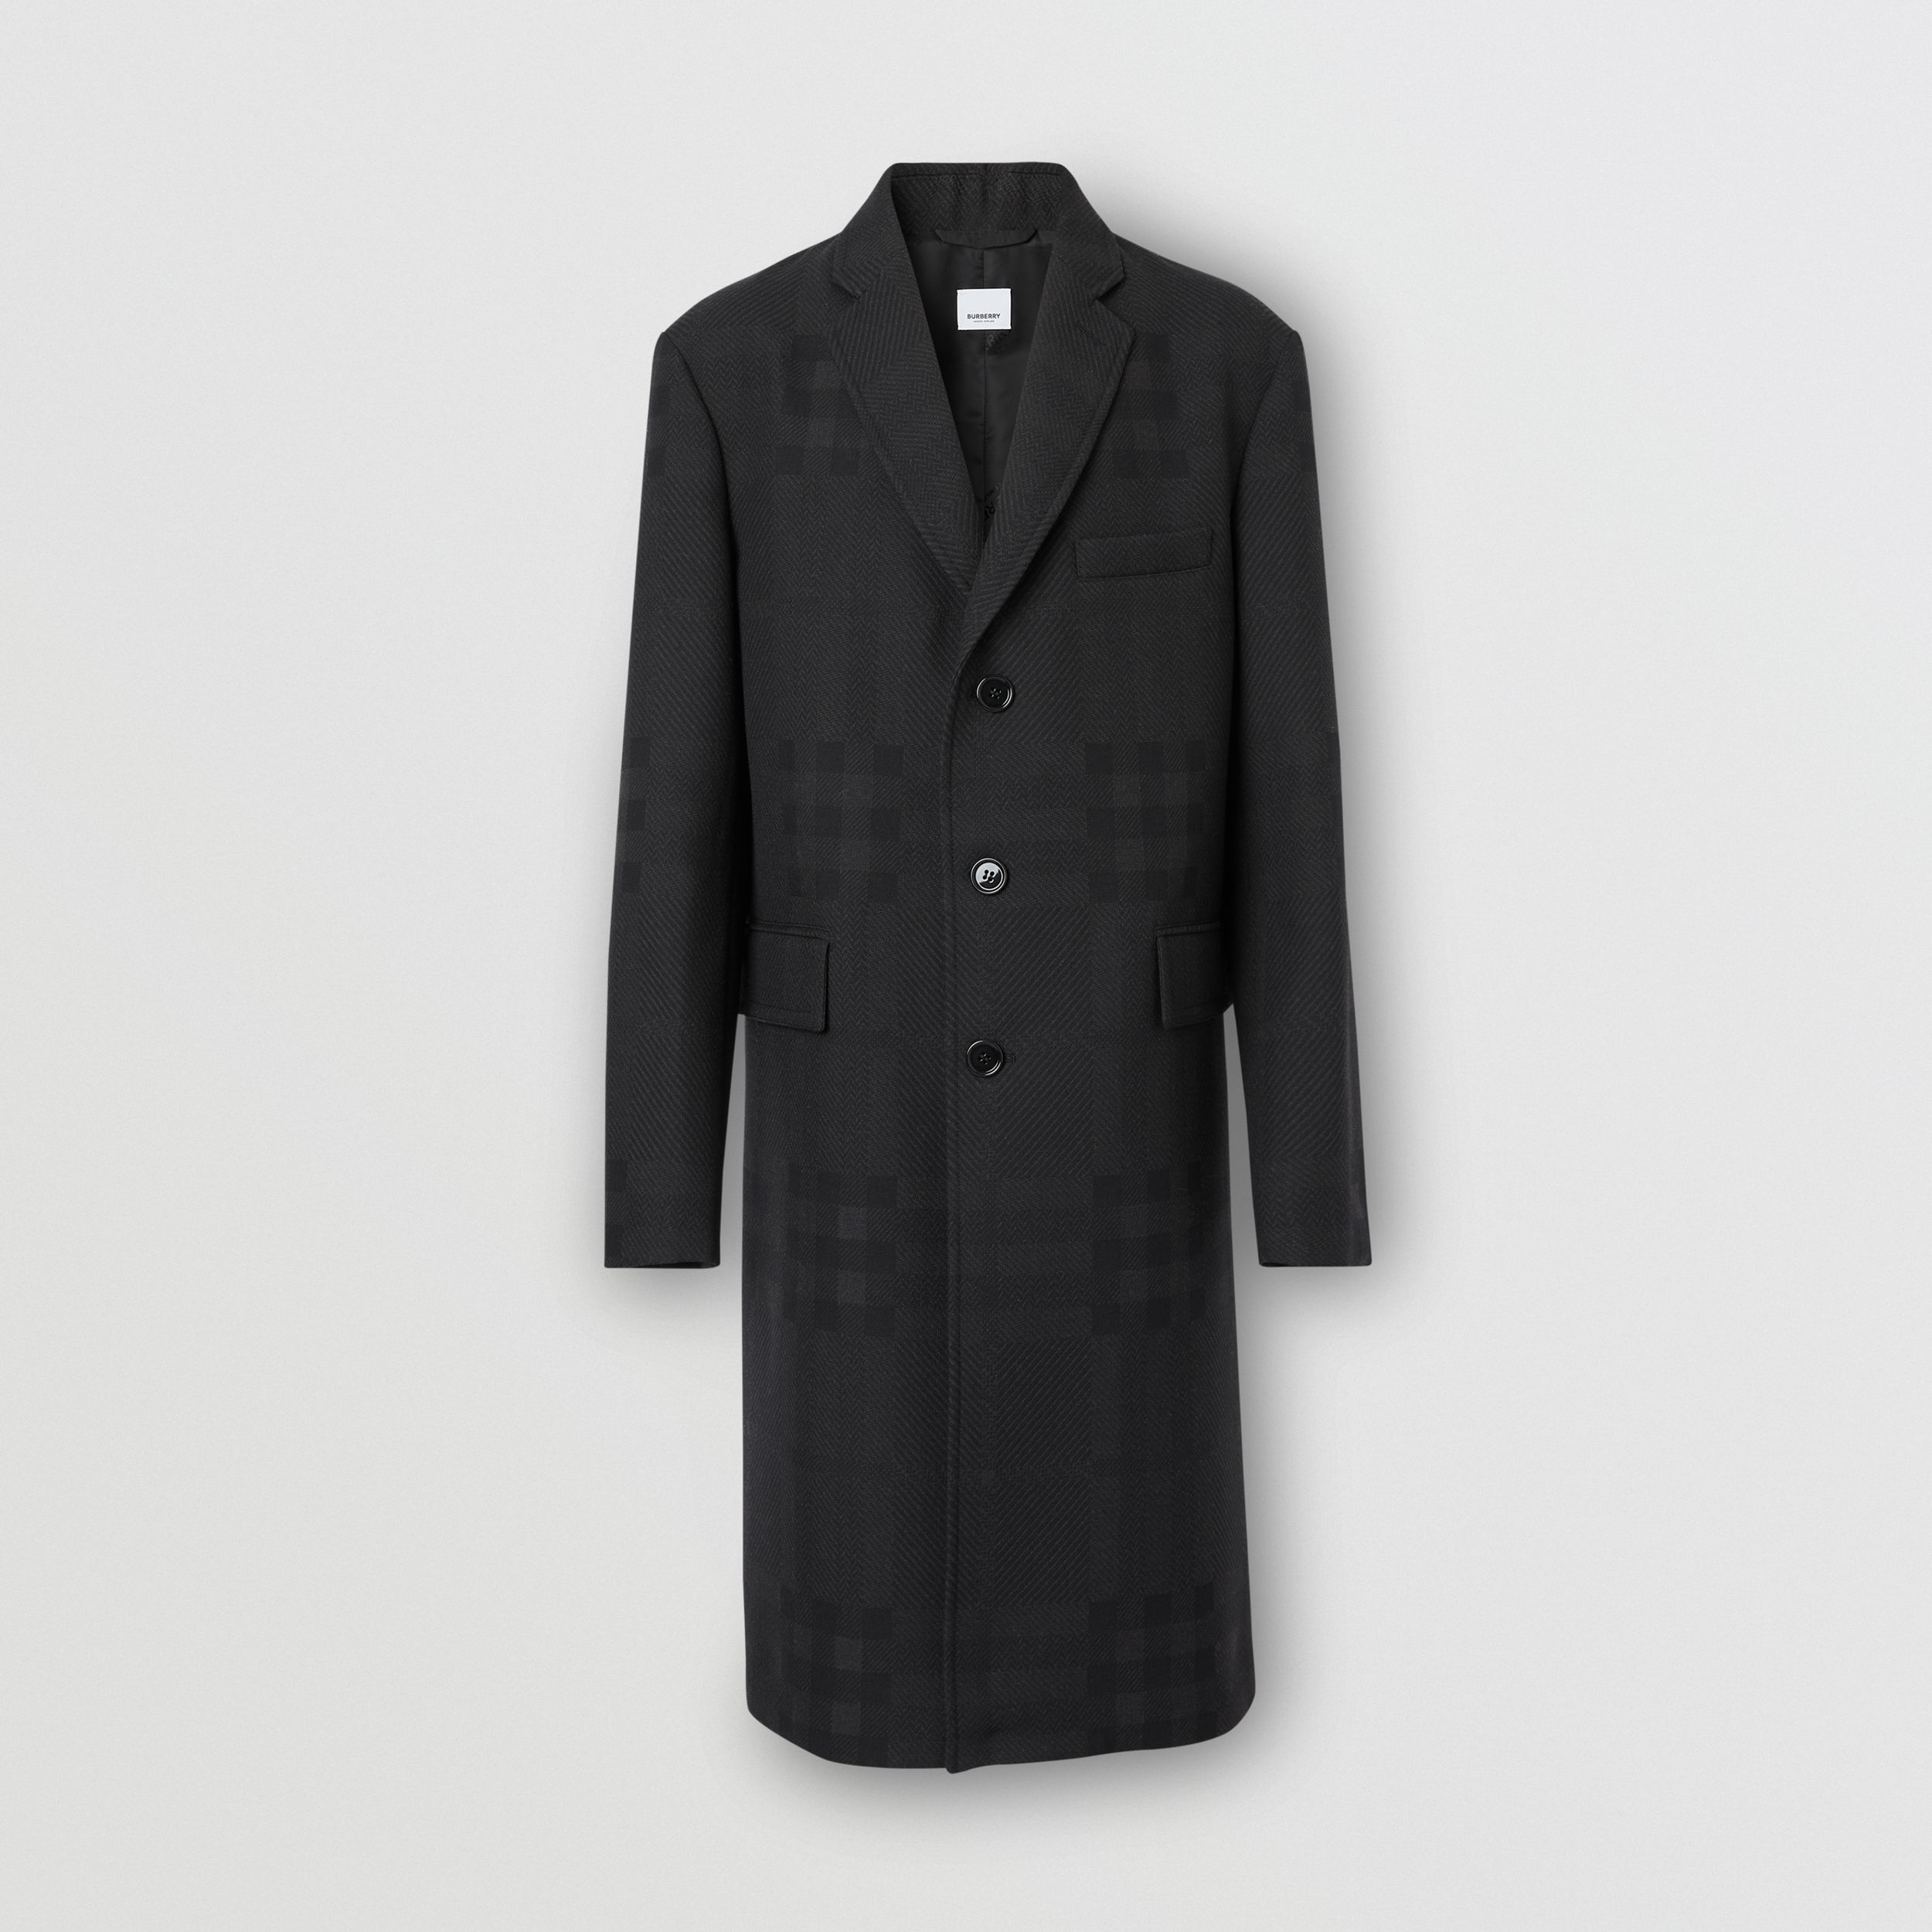 Check Wool Jacquard Tailored Coat in Charcoal Black - Men | Burberry - 4